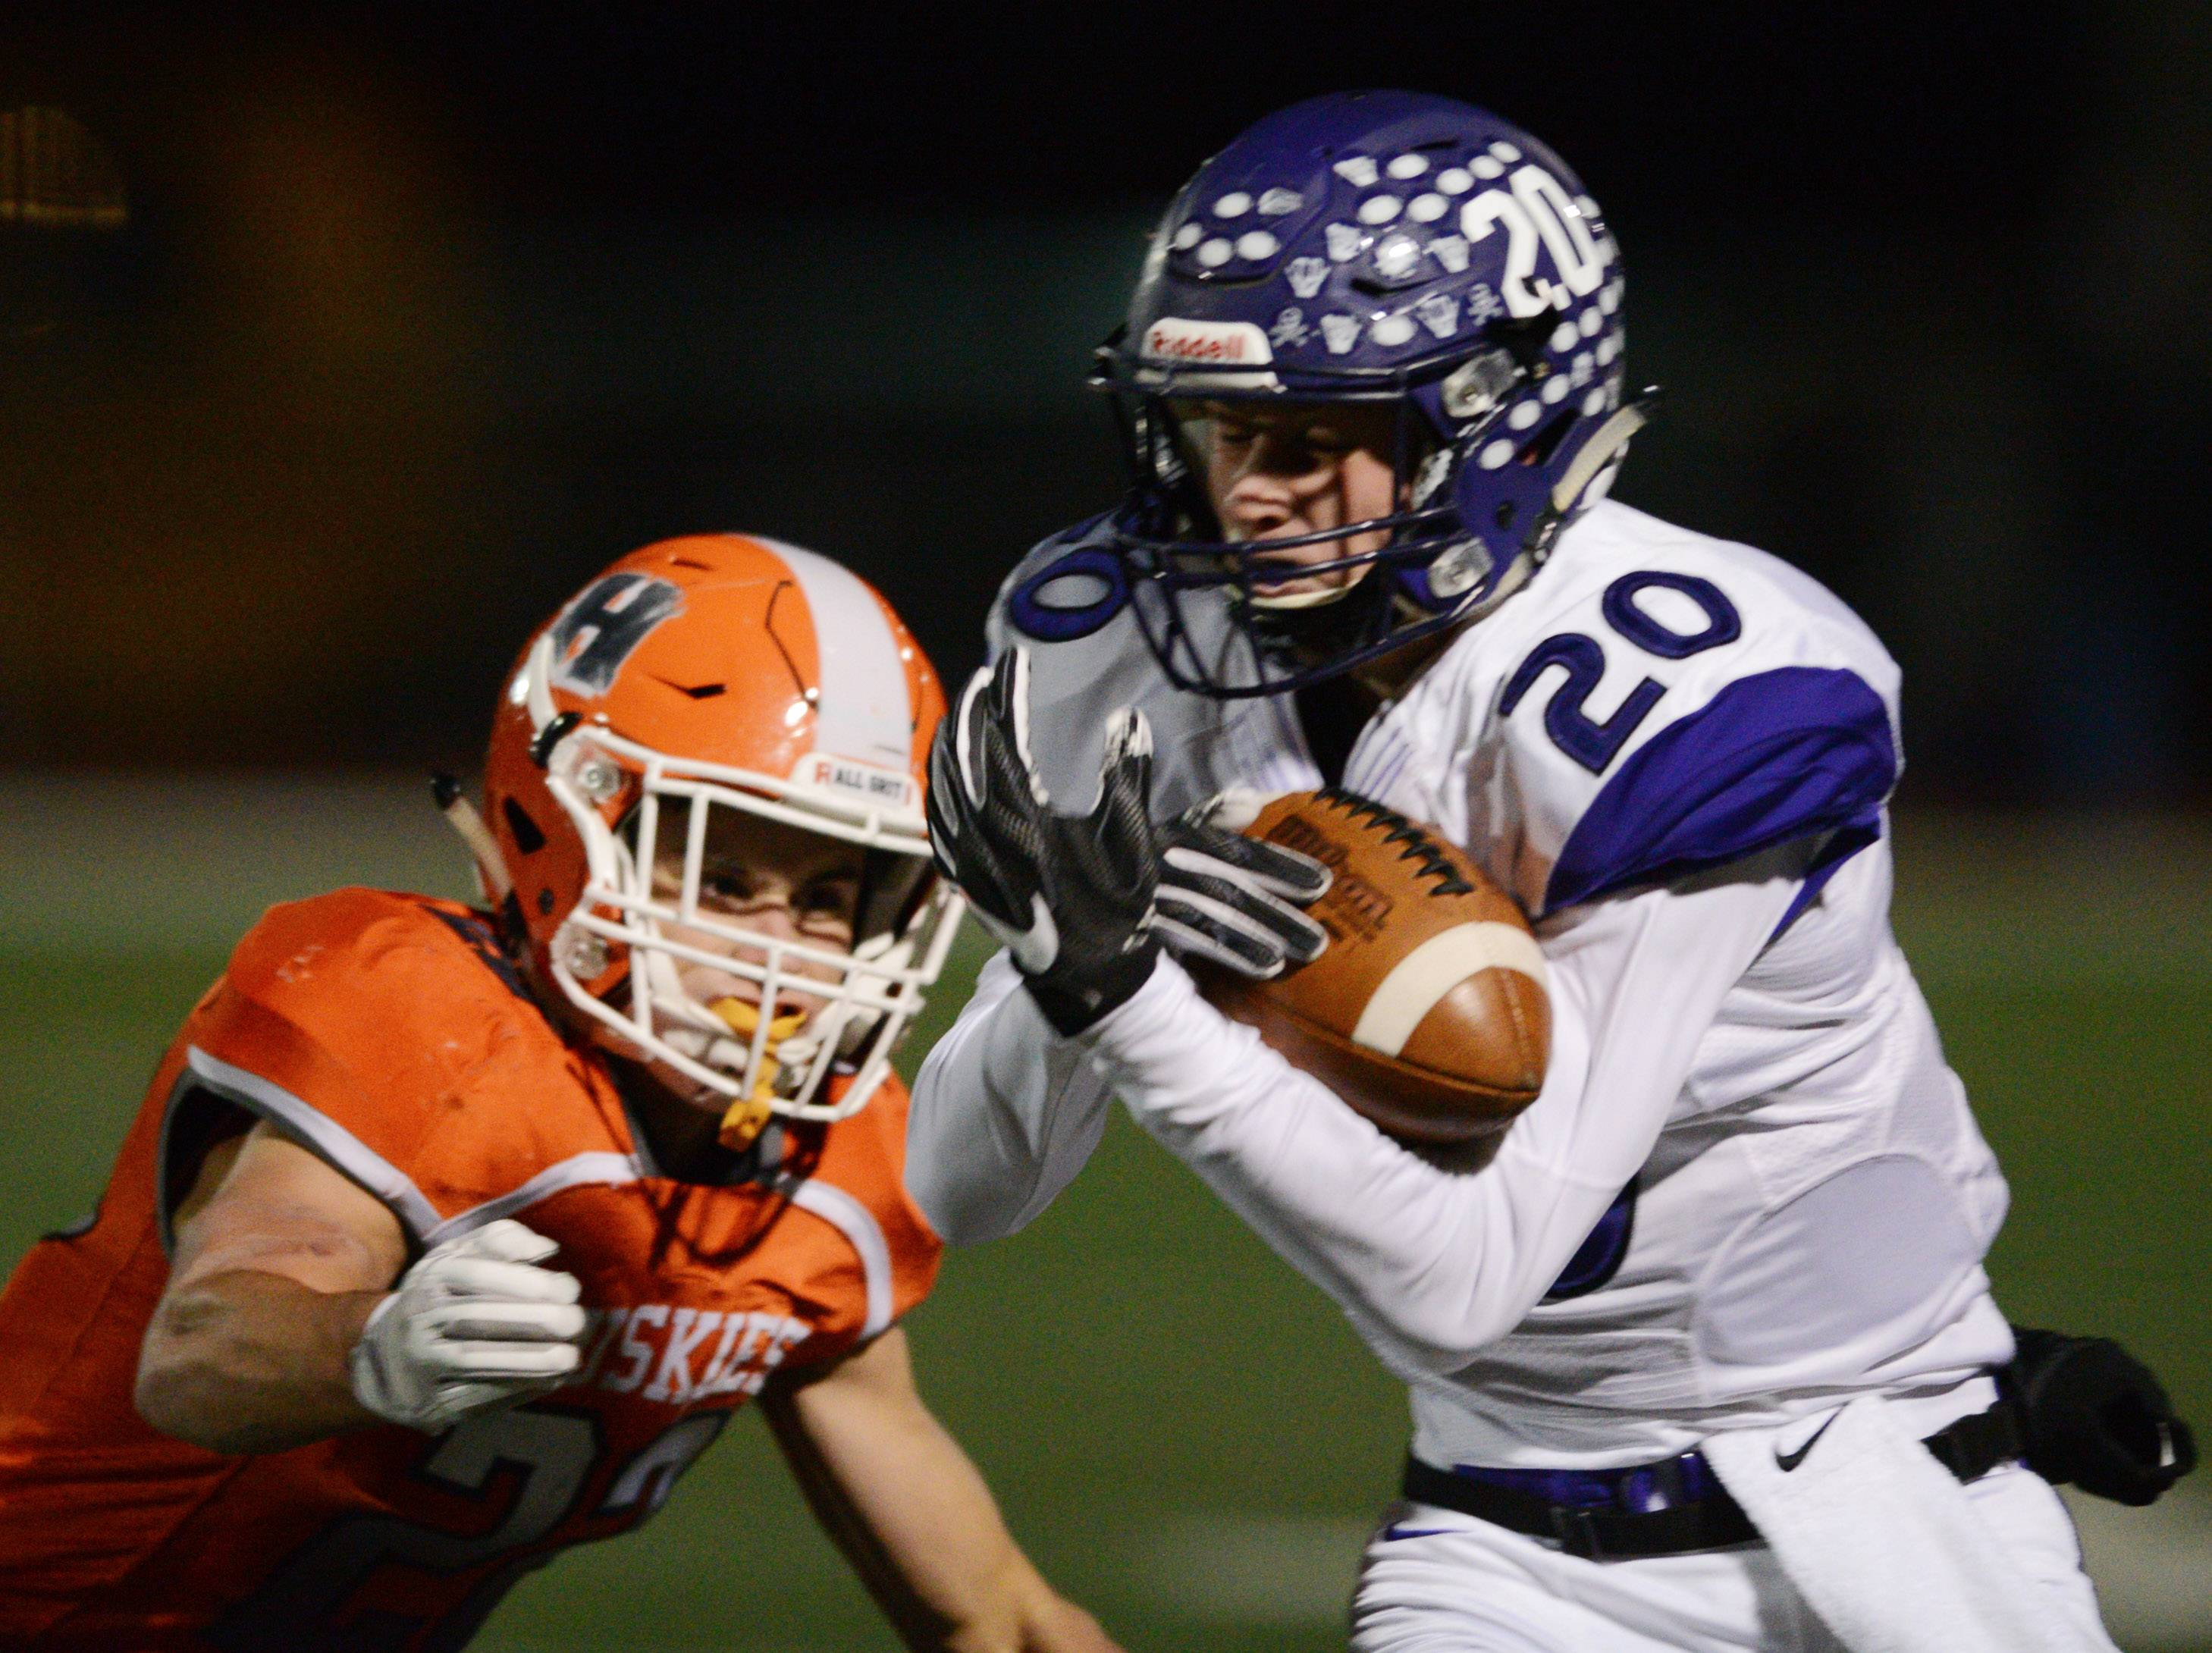 Rolling Meadows' Luke Nordman catches a pass in front of Hersey defender Luke Cecala first-round Class 7A playoff action in Arlington Heights on Friday.